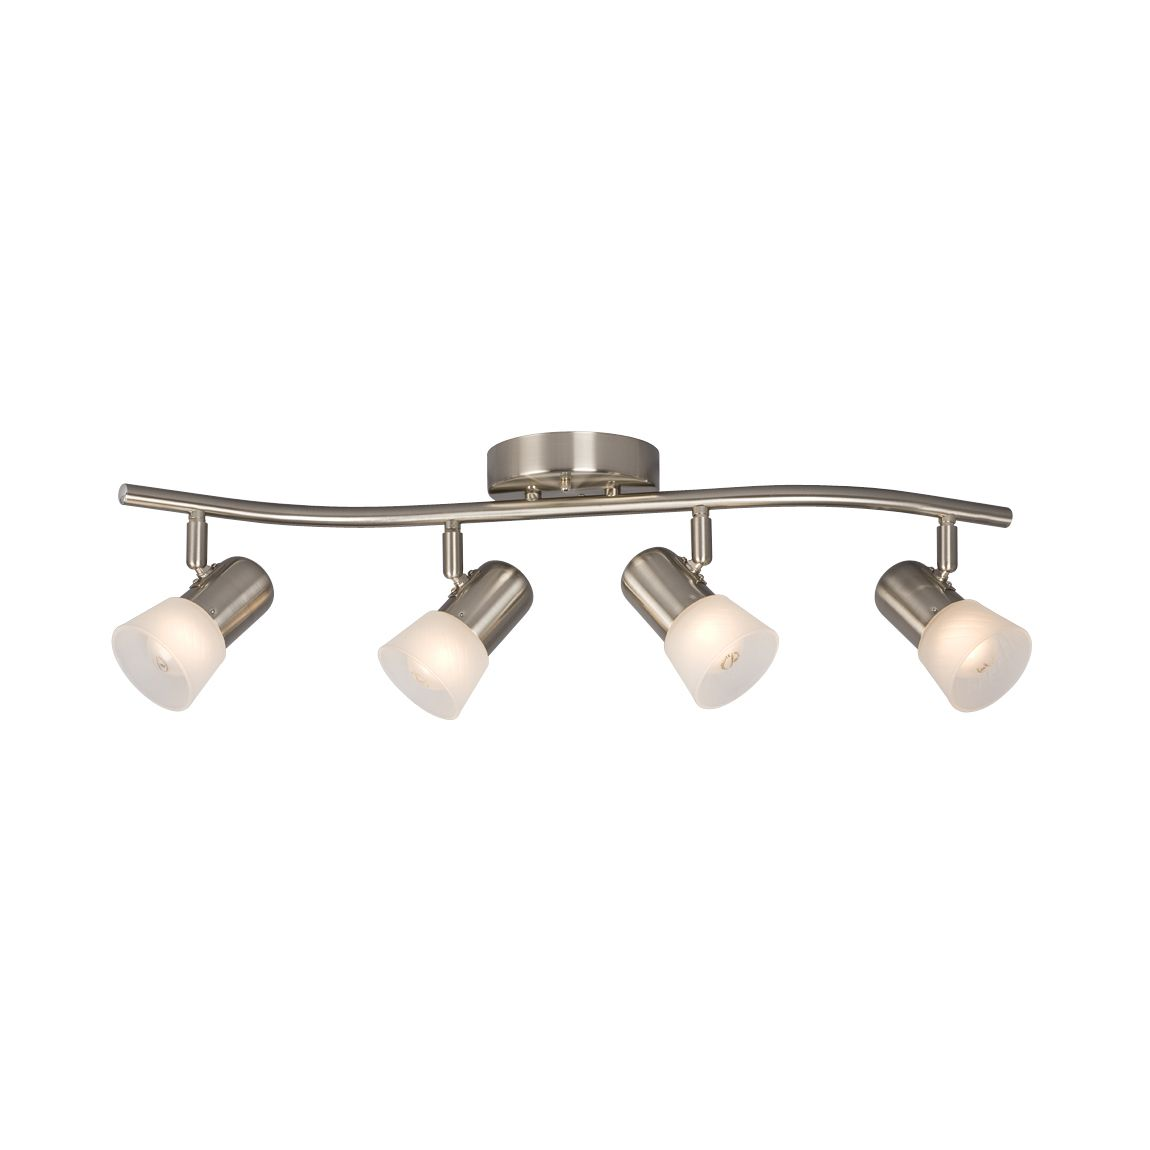 Lowes Track Lighting Fixtures: Galaxy Lighting 754174 Luna III 4-Light Track Lighting Kit